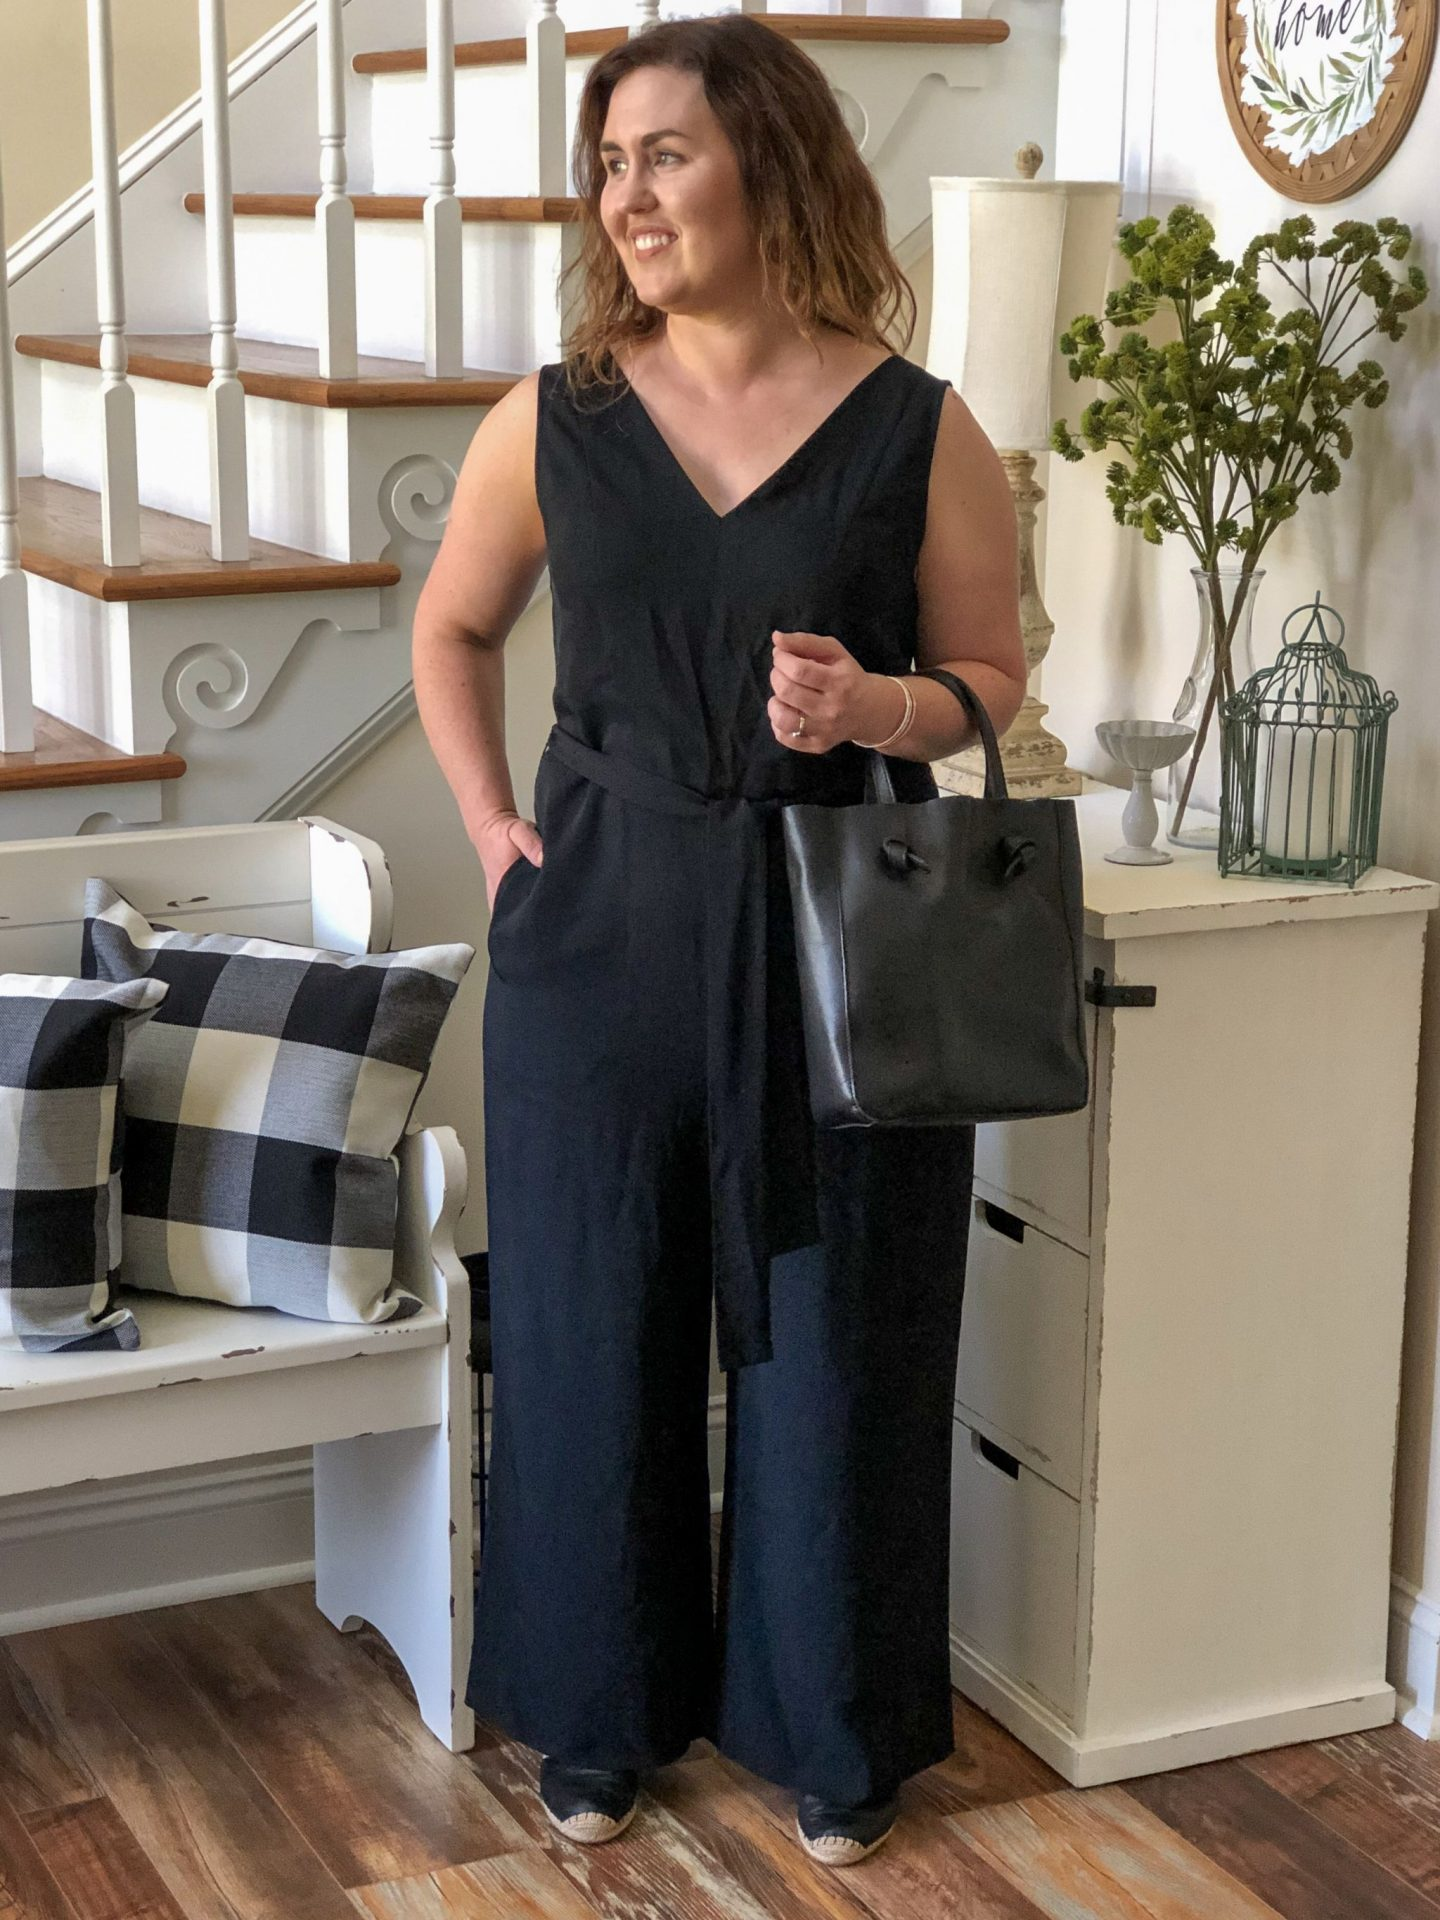 NC blogger Rebecca Lately shares how she styles the Everlane jumpsuit two ways. This versatile piece is perfect for a minimalist's closet.